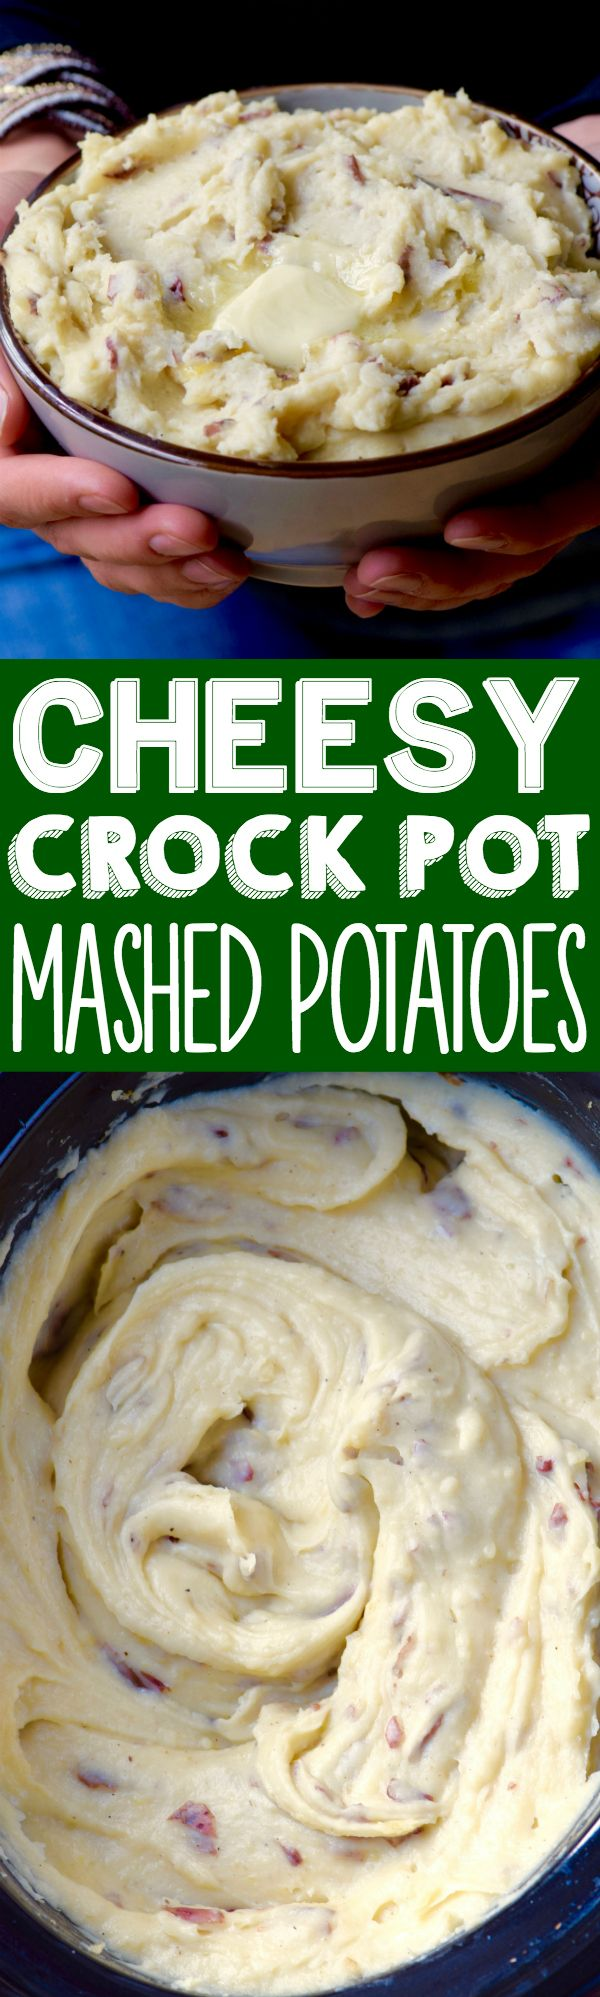 These Cheesy Crock Pot Mashed Potatoes are so easy and the BEST mashed potatoes I've ever had!